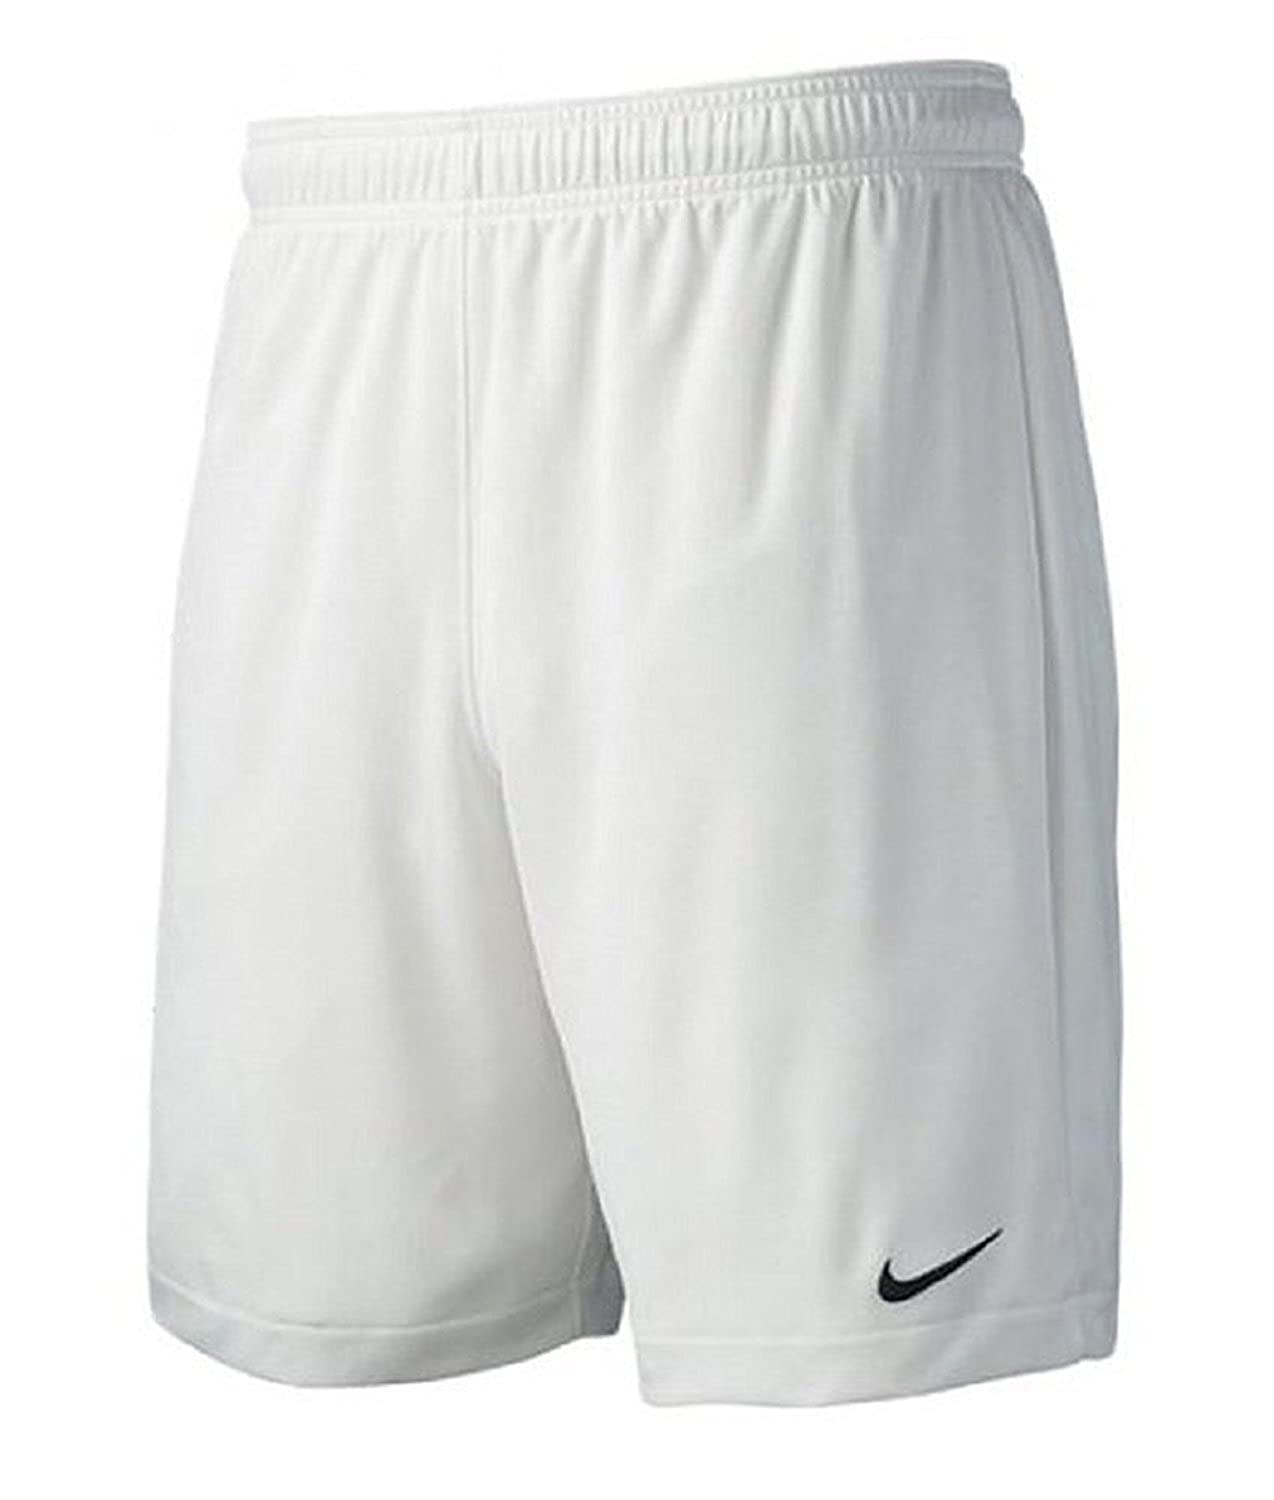 Amazon.com : Nike Men's Team Equalizer Soccer Shorts, Black, Small ...